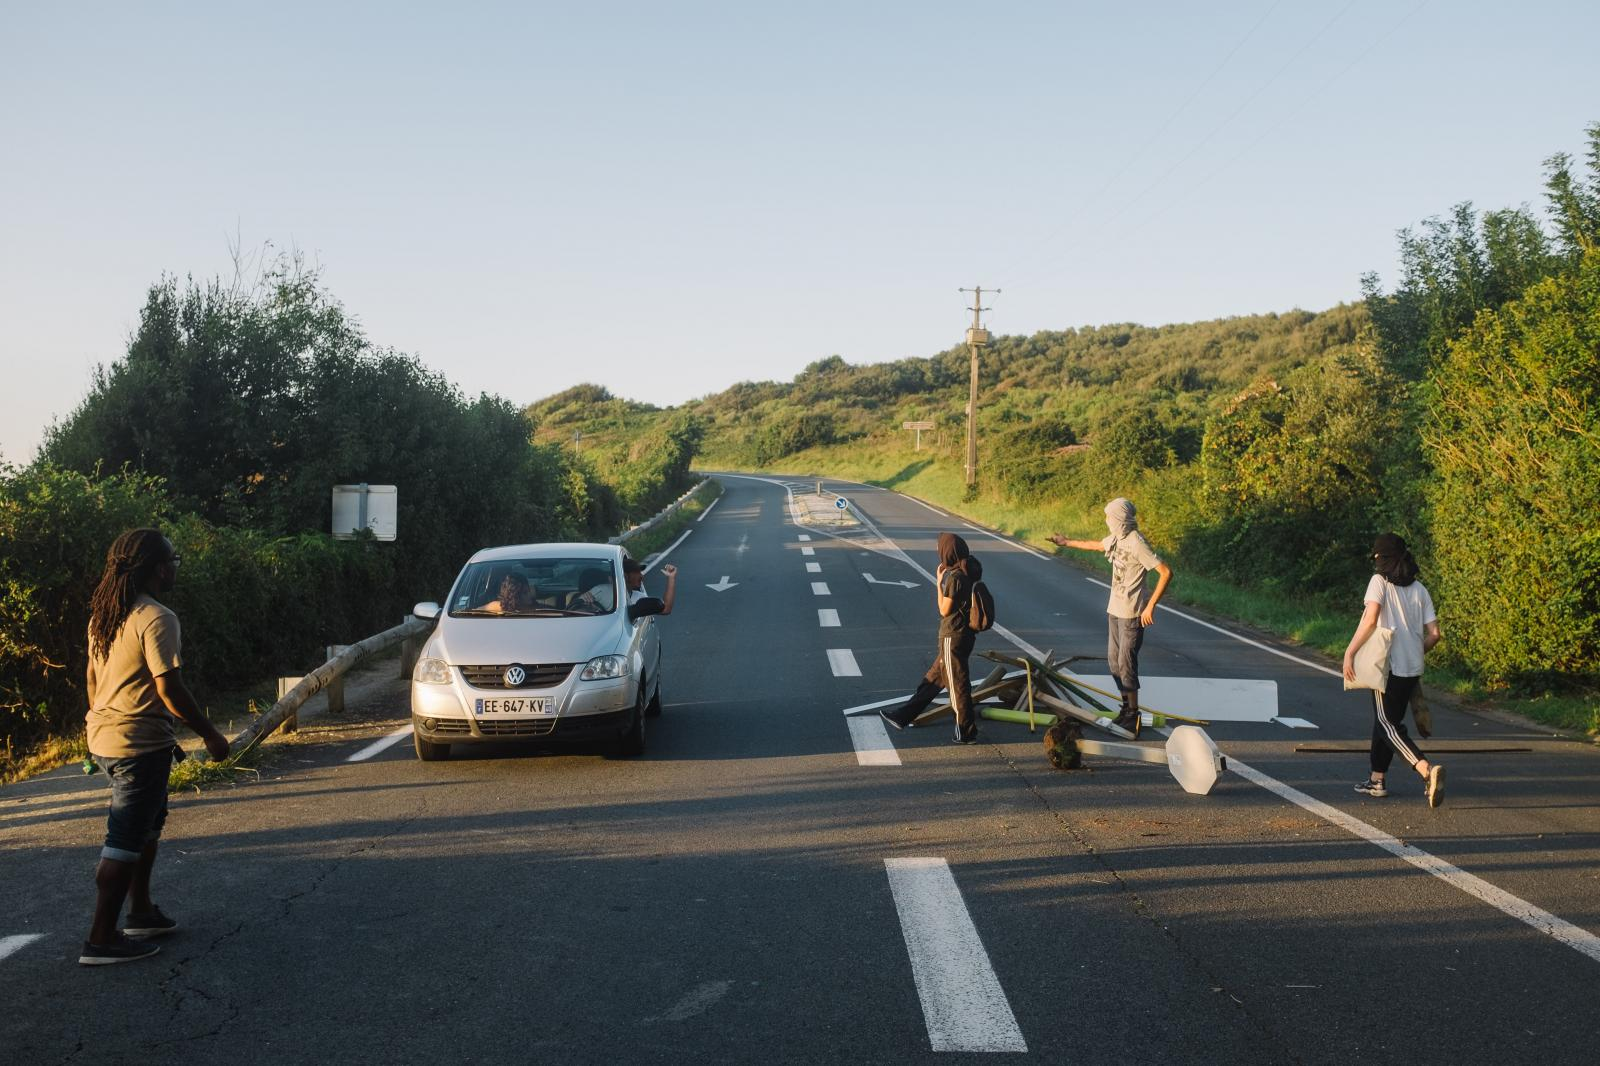 2019-08-23 - Activists set up roadblock in front of protest camp, following a spontaneous demonstration.